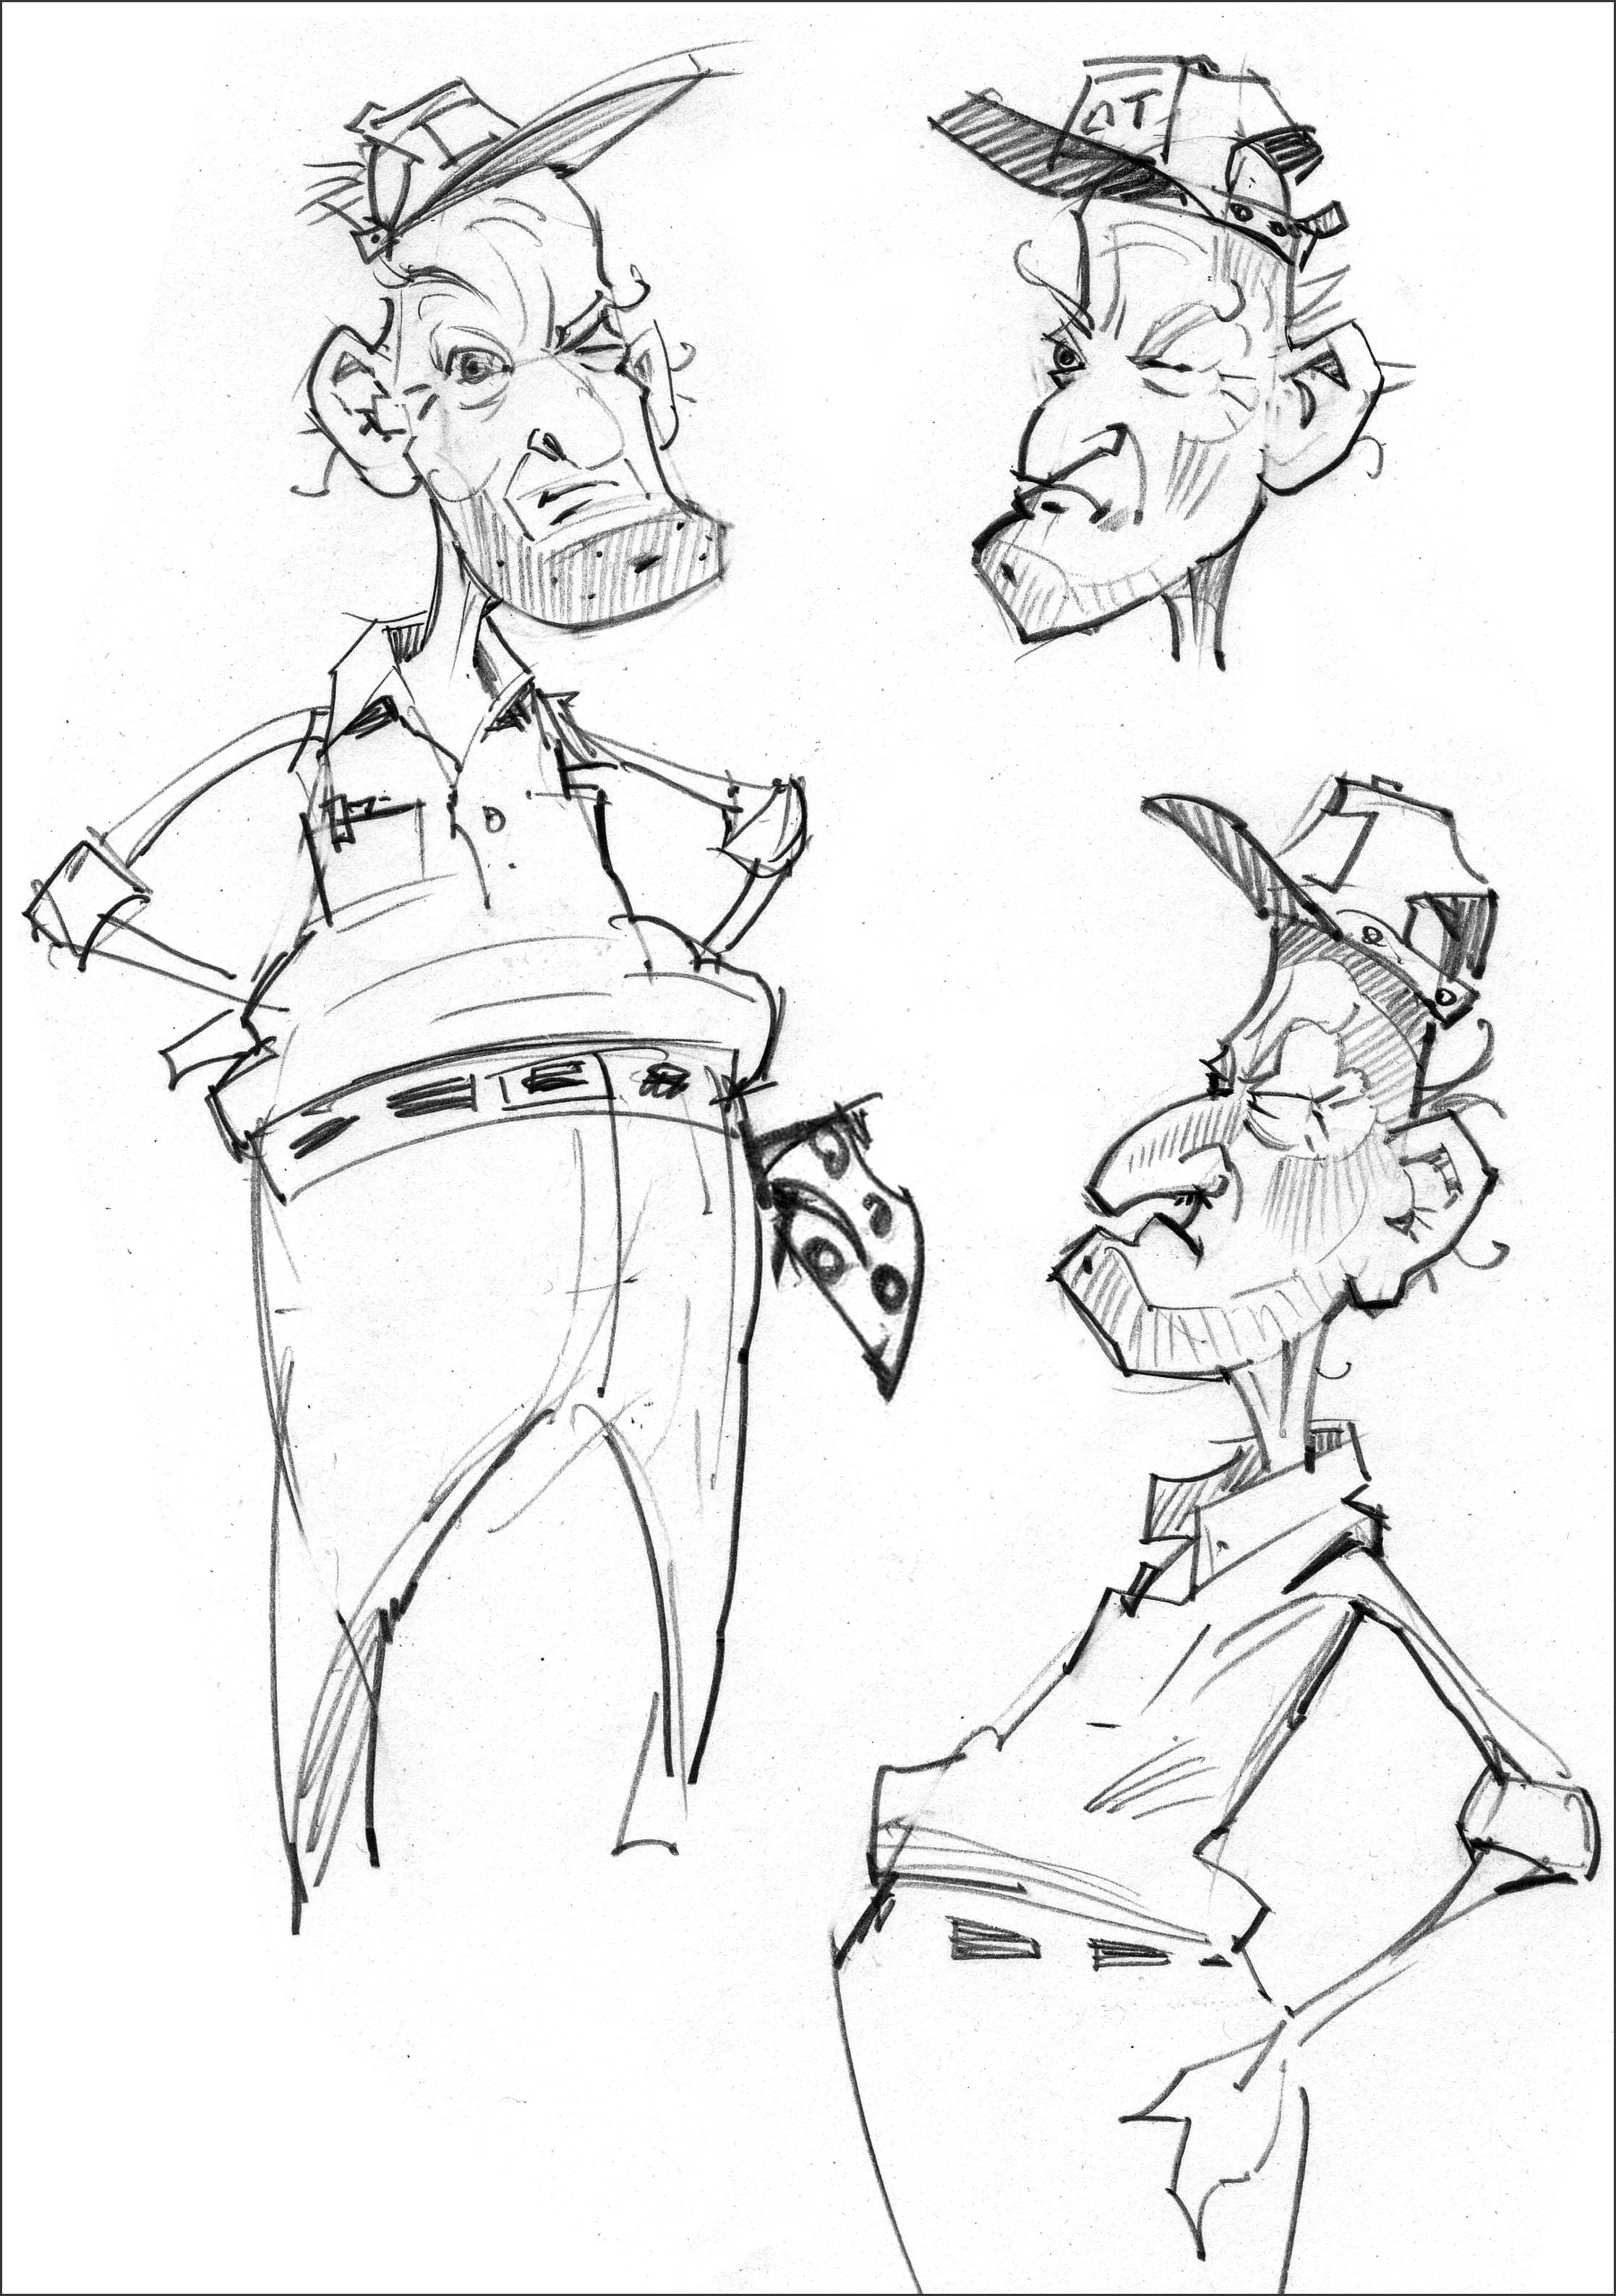 Character studies for Old MacDonald.